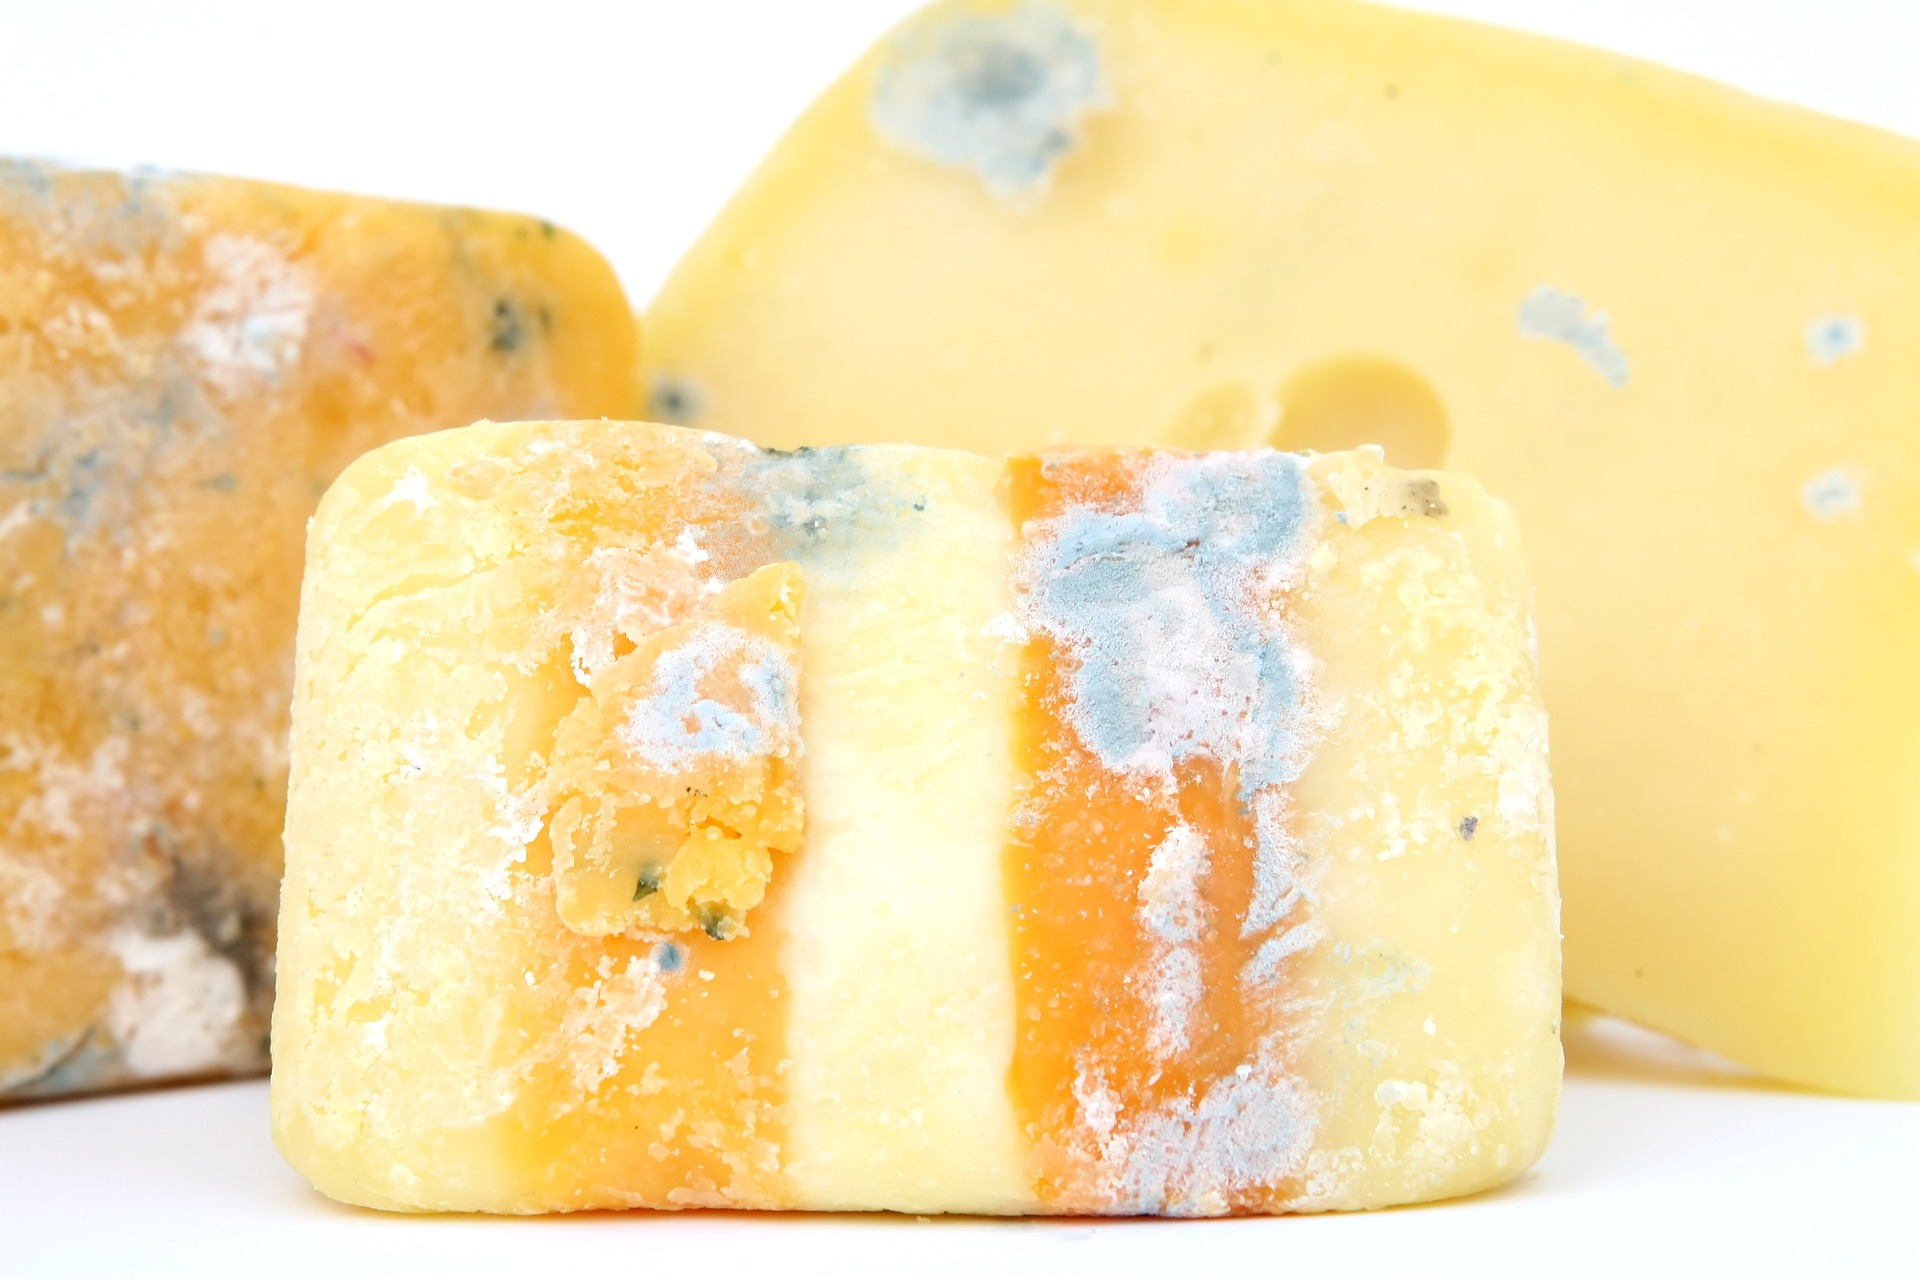 Spoilage of cheese -